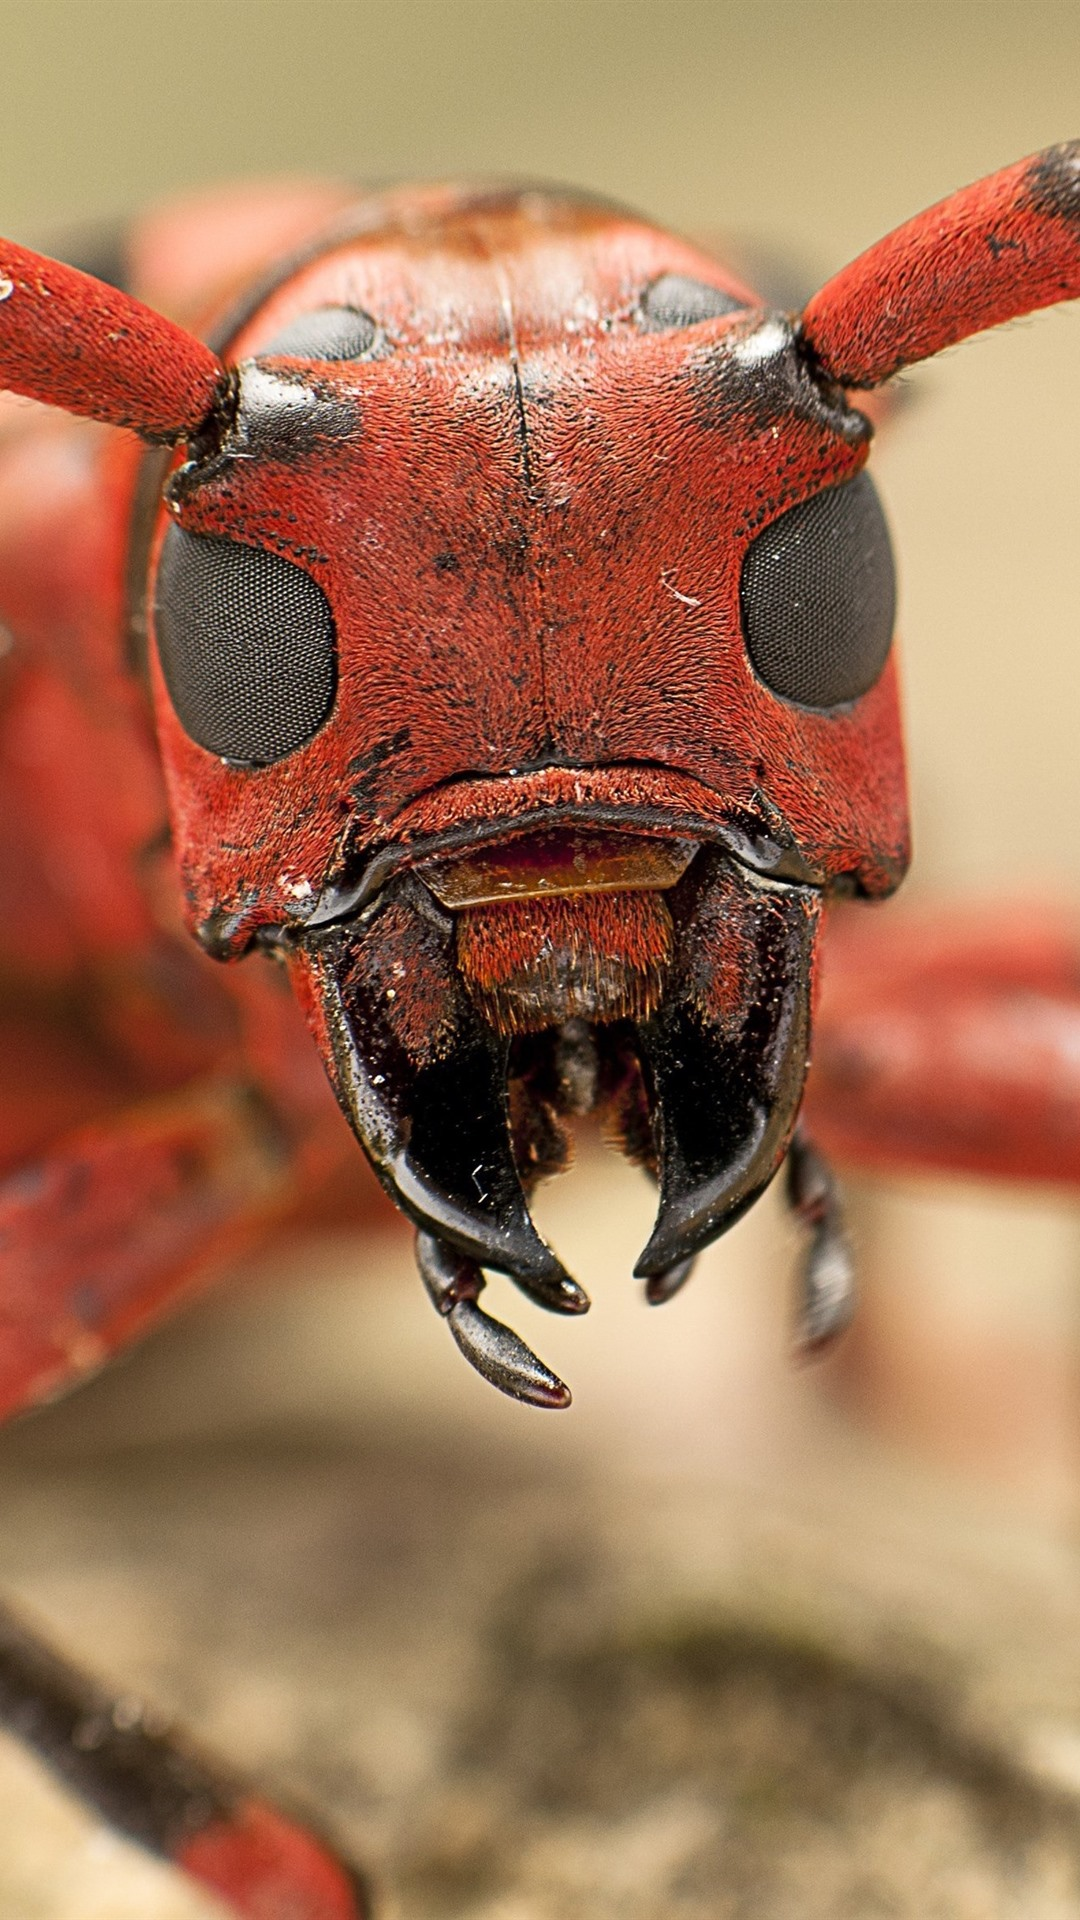 Wallpaper Insect macro photography, head, mouth, antennae